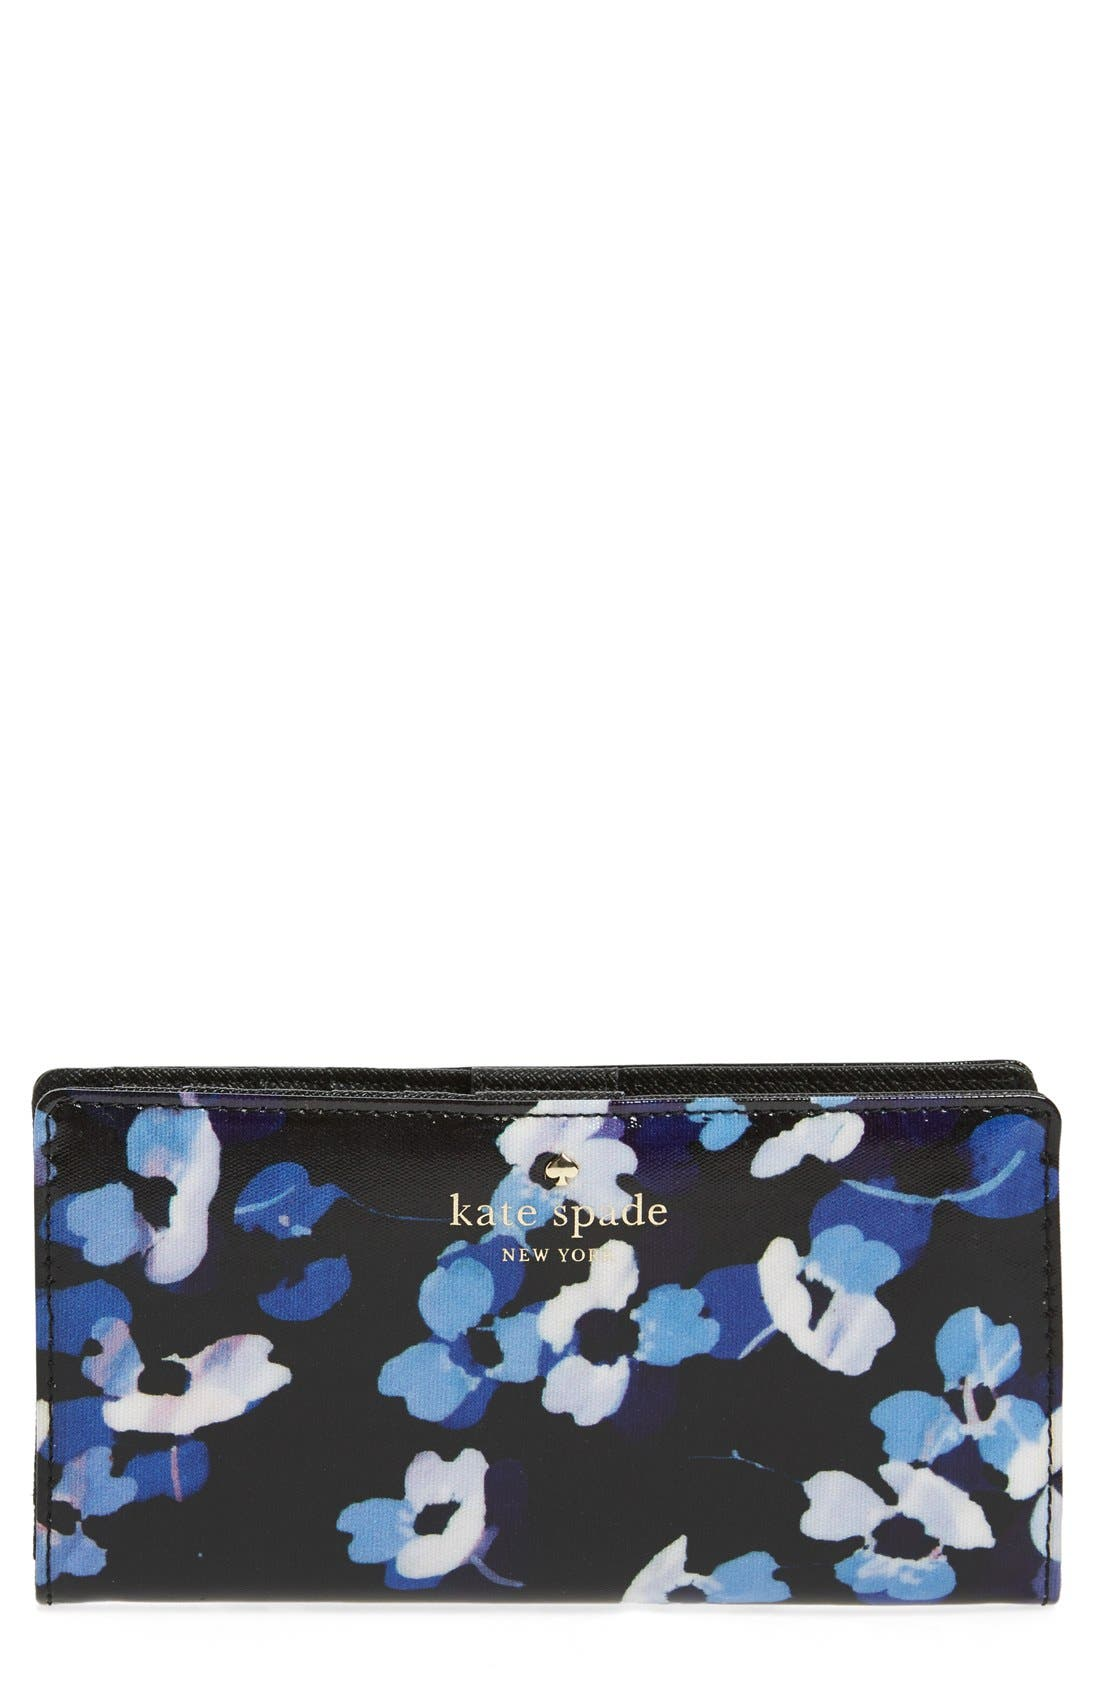 Alternate Image 1 Selected - kate spade new york 'cedar street - floral stacy' coated canvas wallet